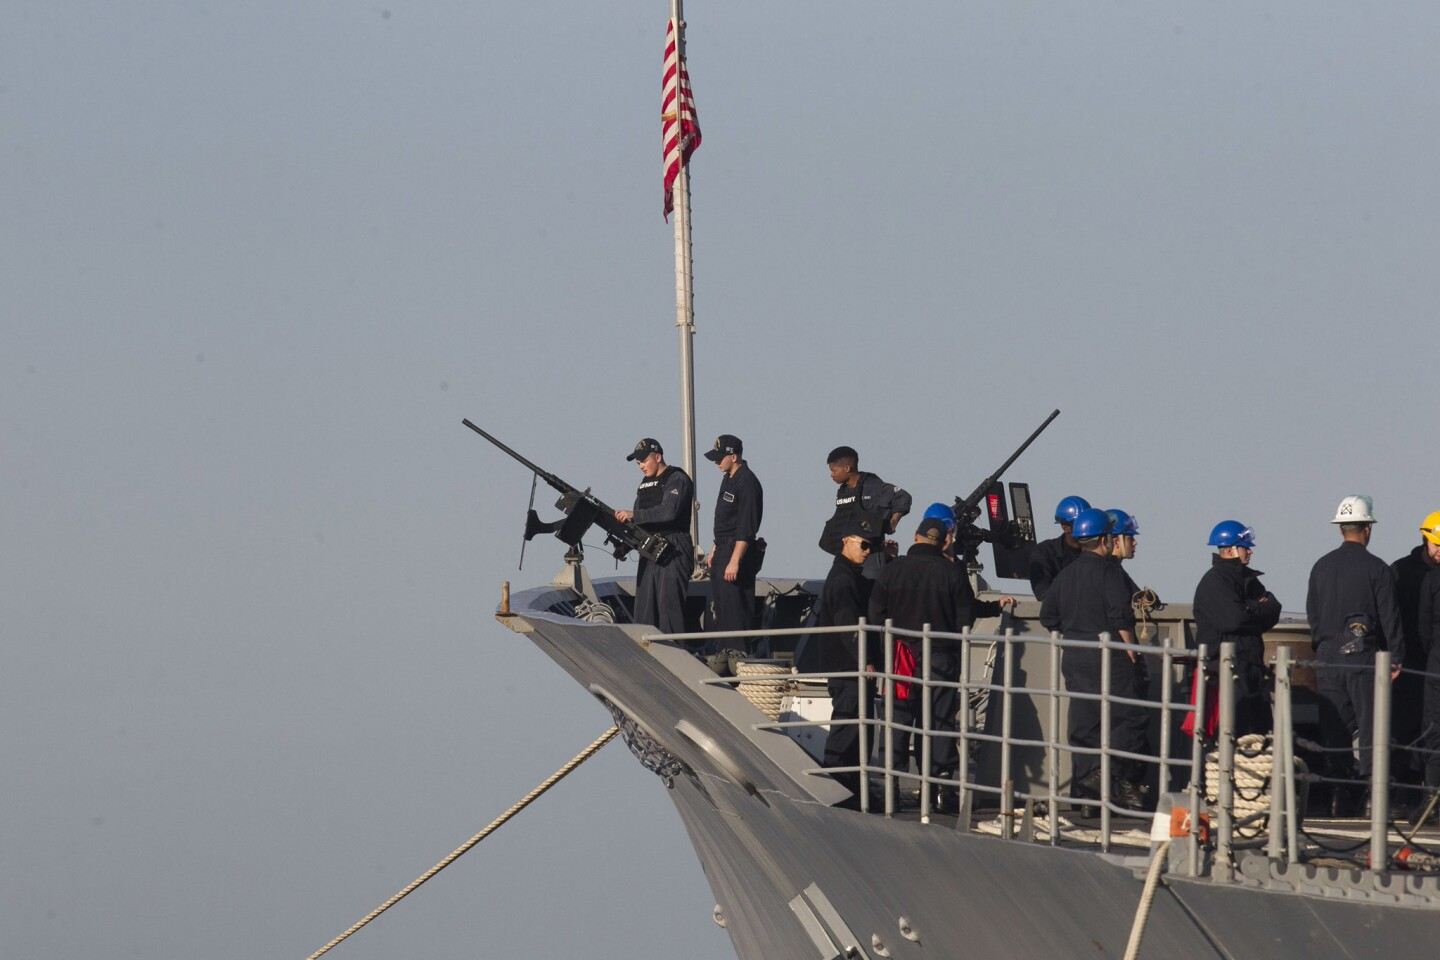 The guided missile cruiser USS Lake Champlain readied to depart.